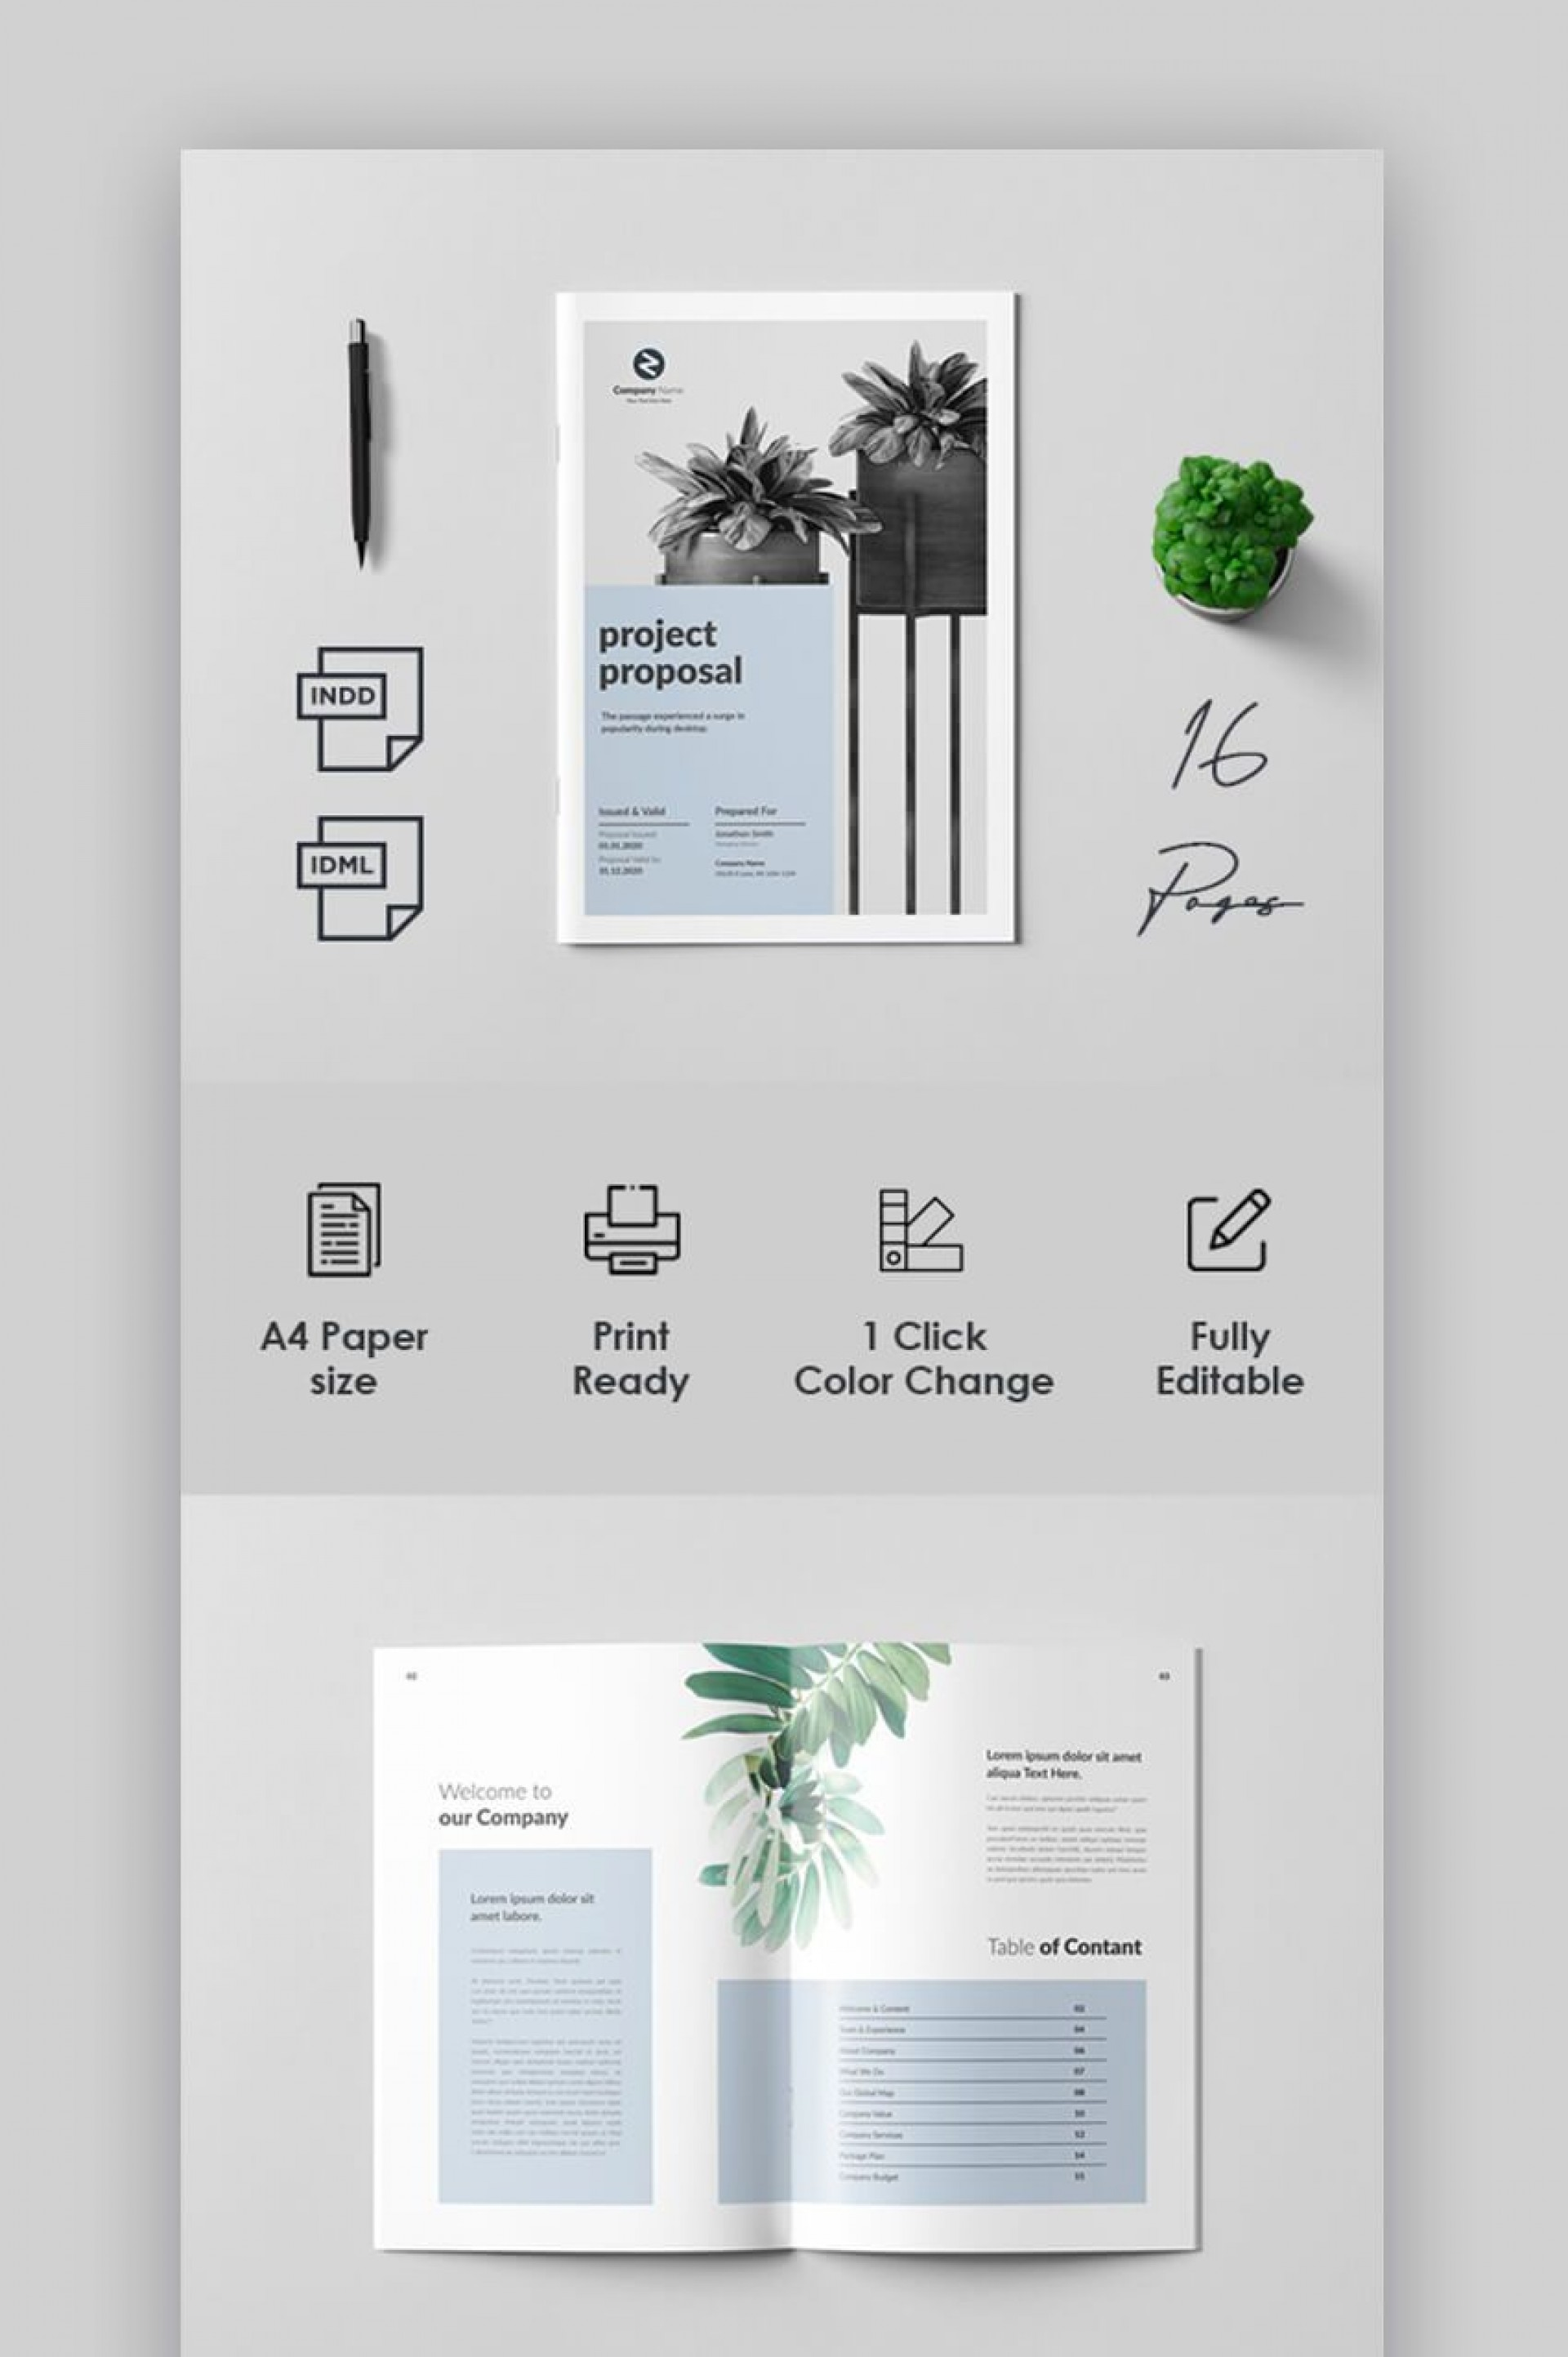 006 Staggering Social Media Proposal Template 2019 Sample 1920